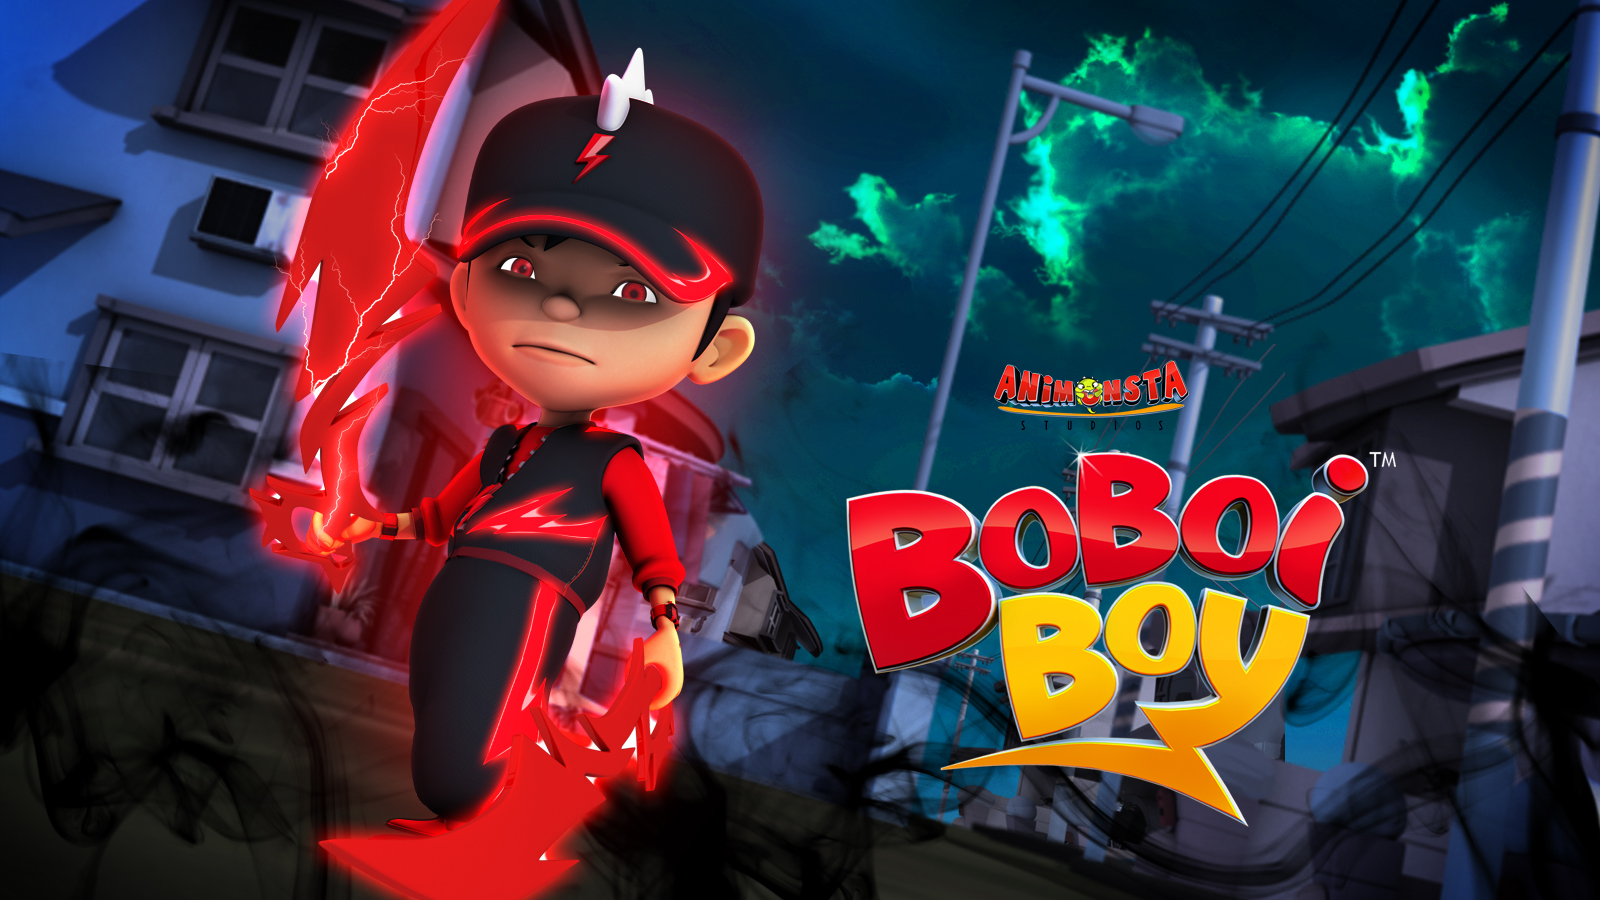 Boboiboy Images Boboiboy Halilintar Wallpaper Hd Wallpaper And